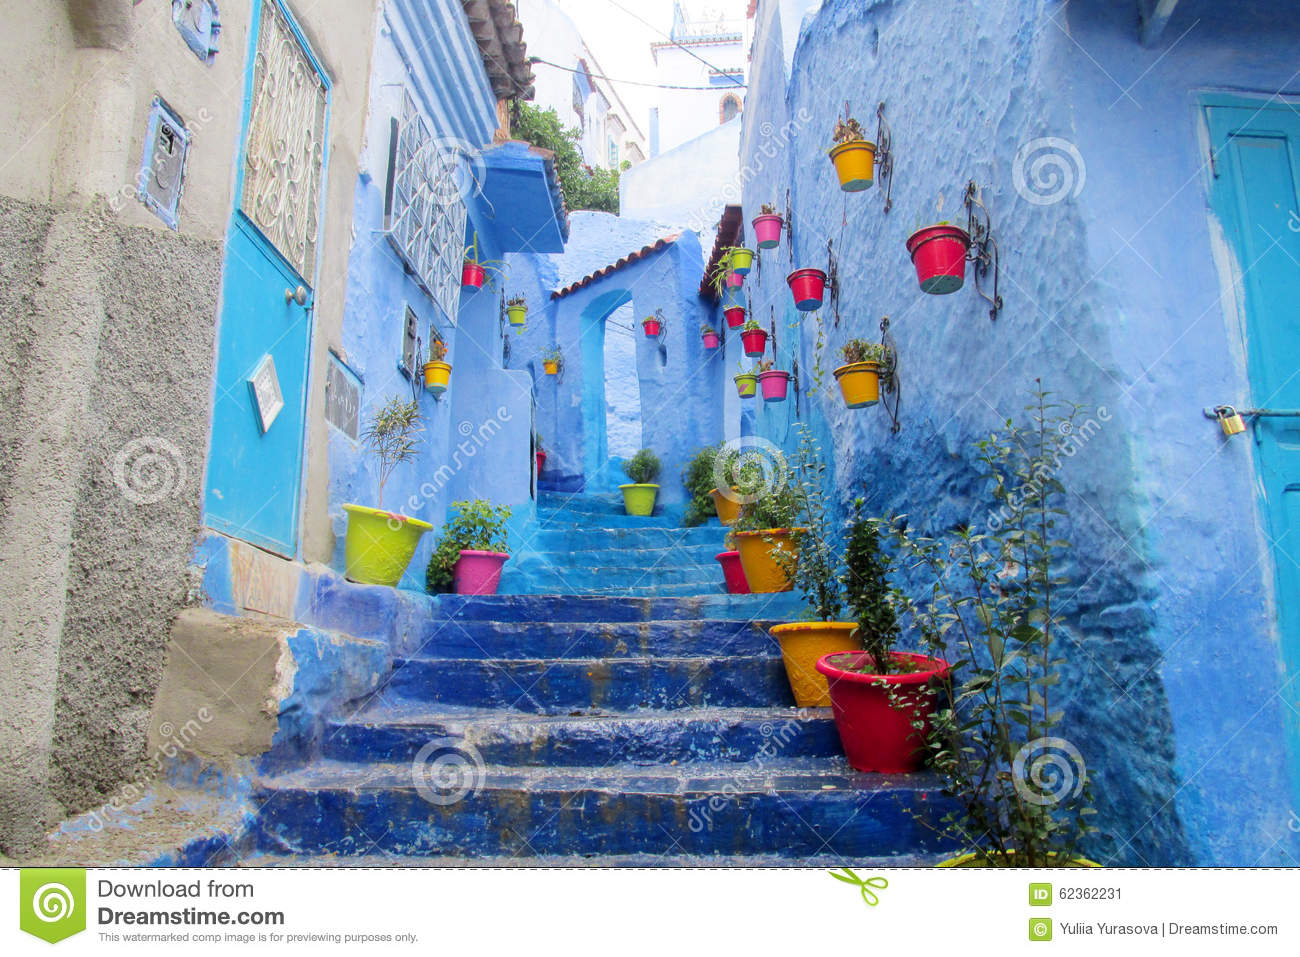 3d Wallpaper For House Walls Blue City Chefchaouen Street Stock Photo Image 62362231